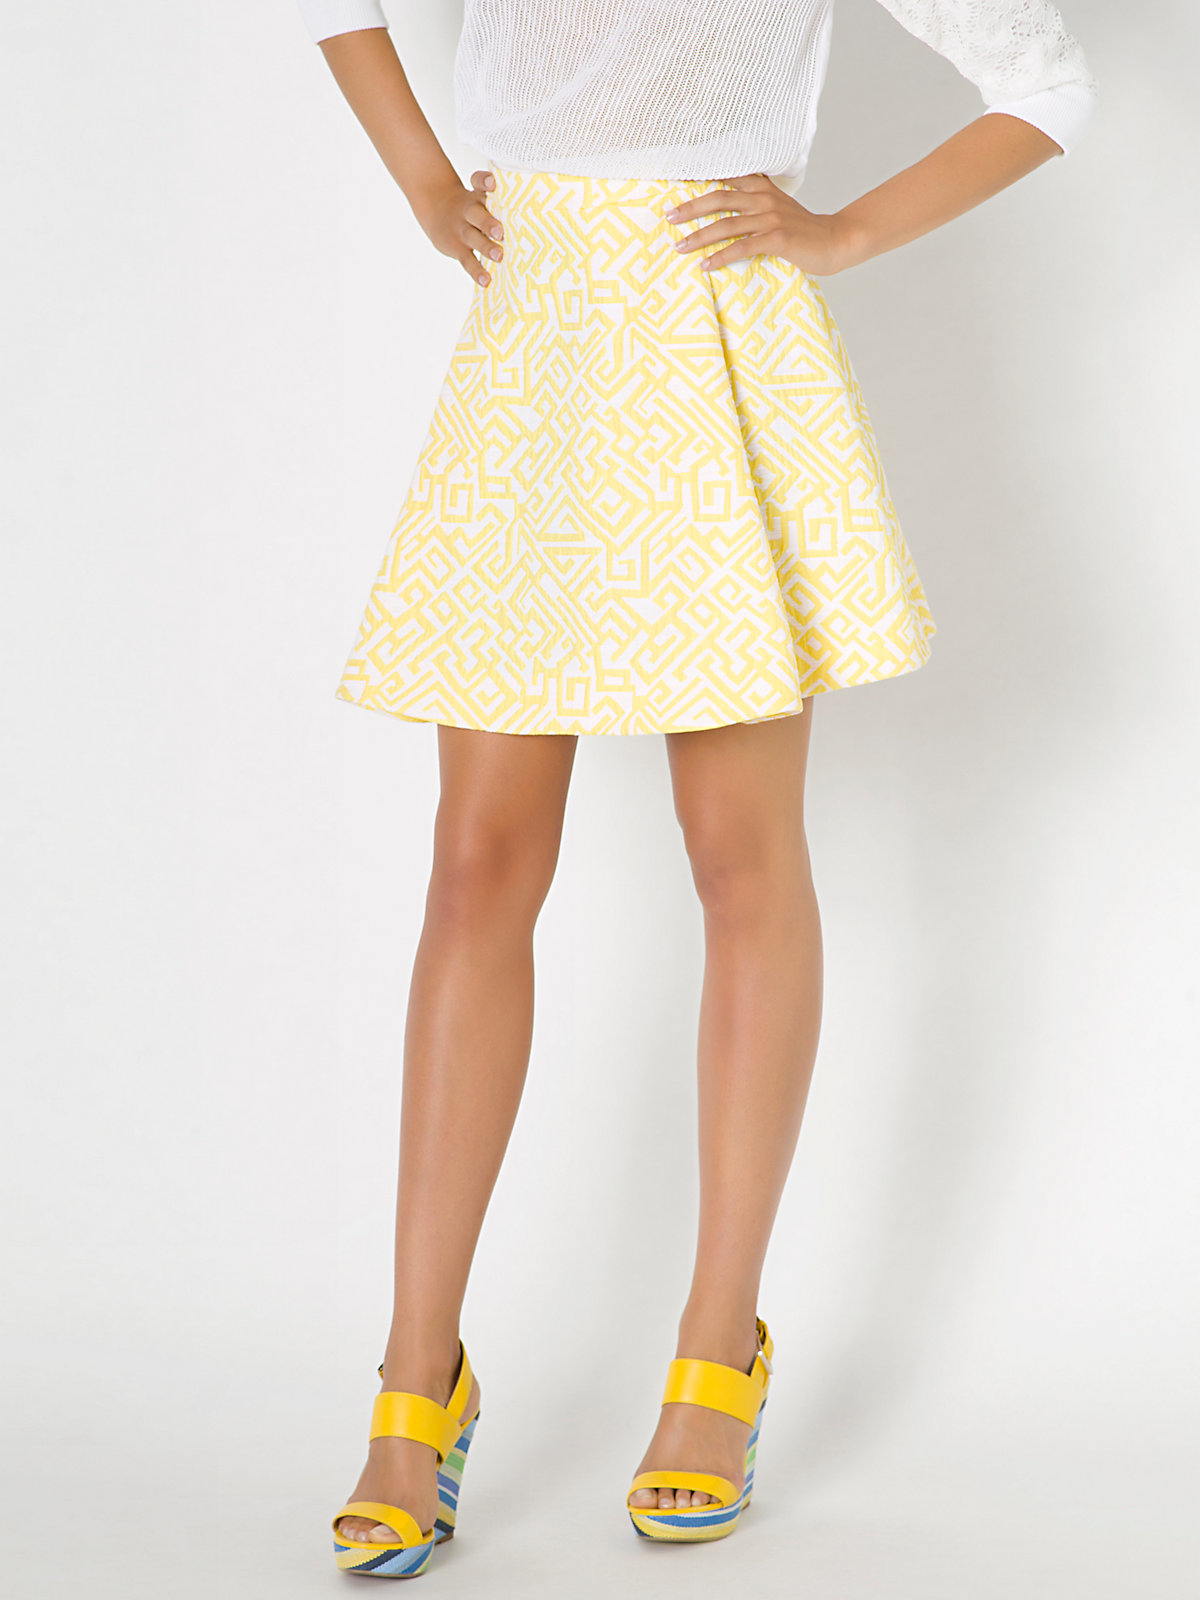 patrizia pepe high waisted corolla skirt in cotton mix